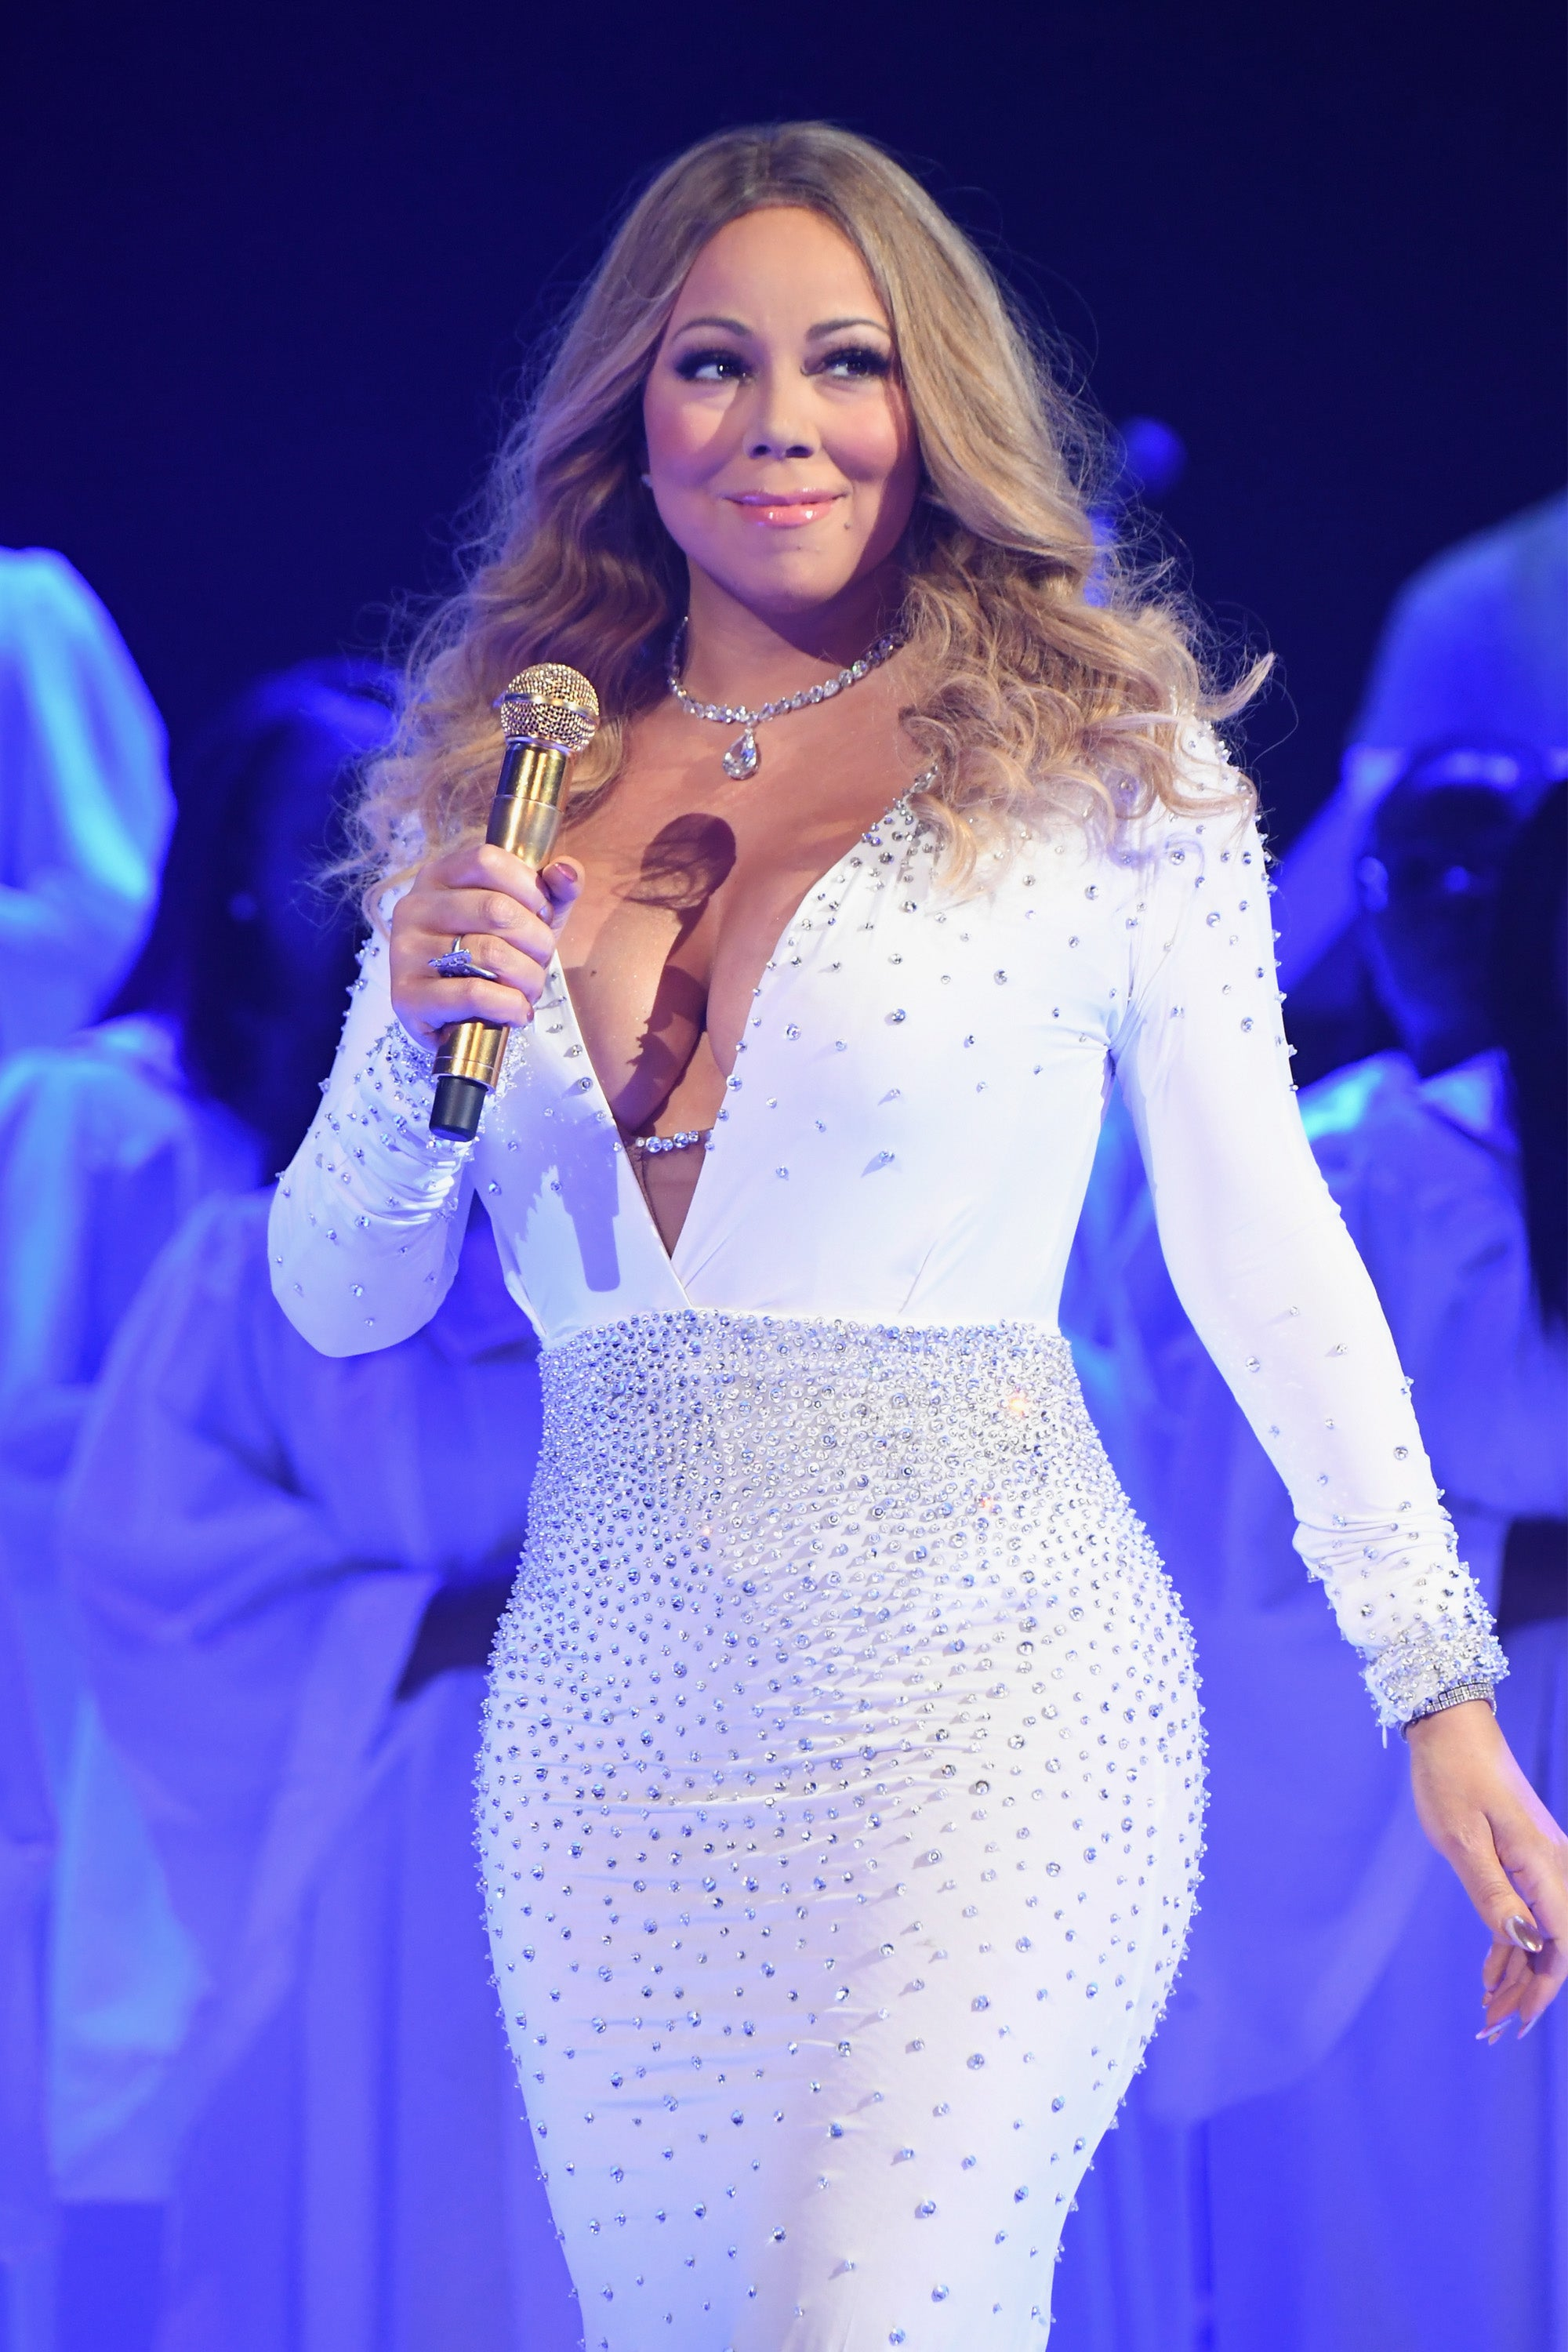 Lambs Be On Alert: Mariah Carey Is Dropping New Music This Year